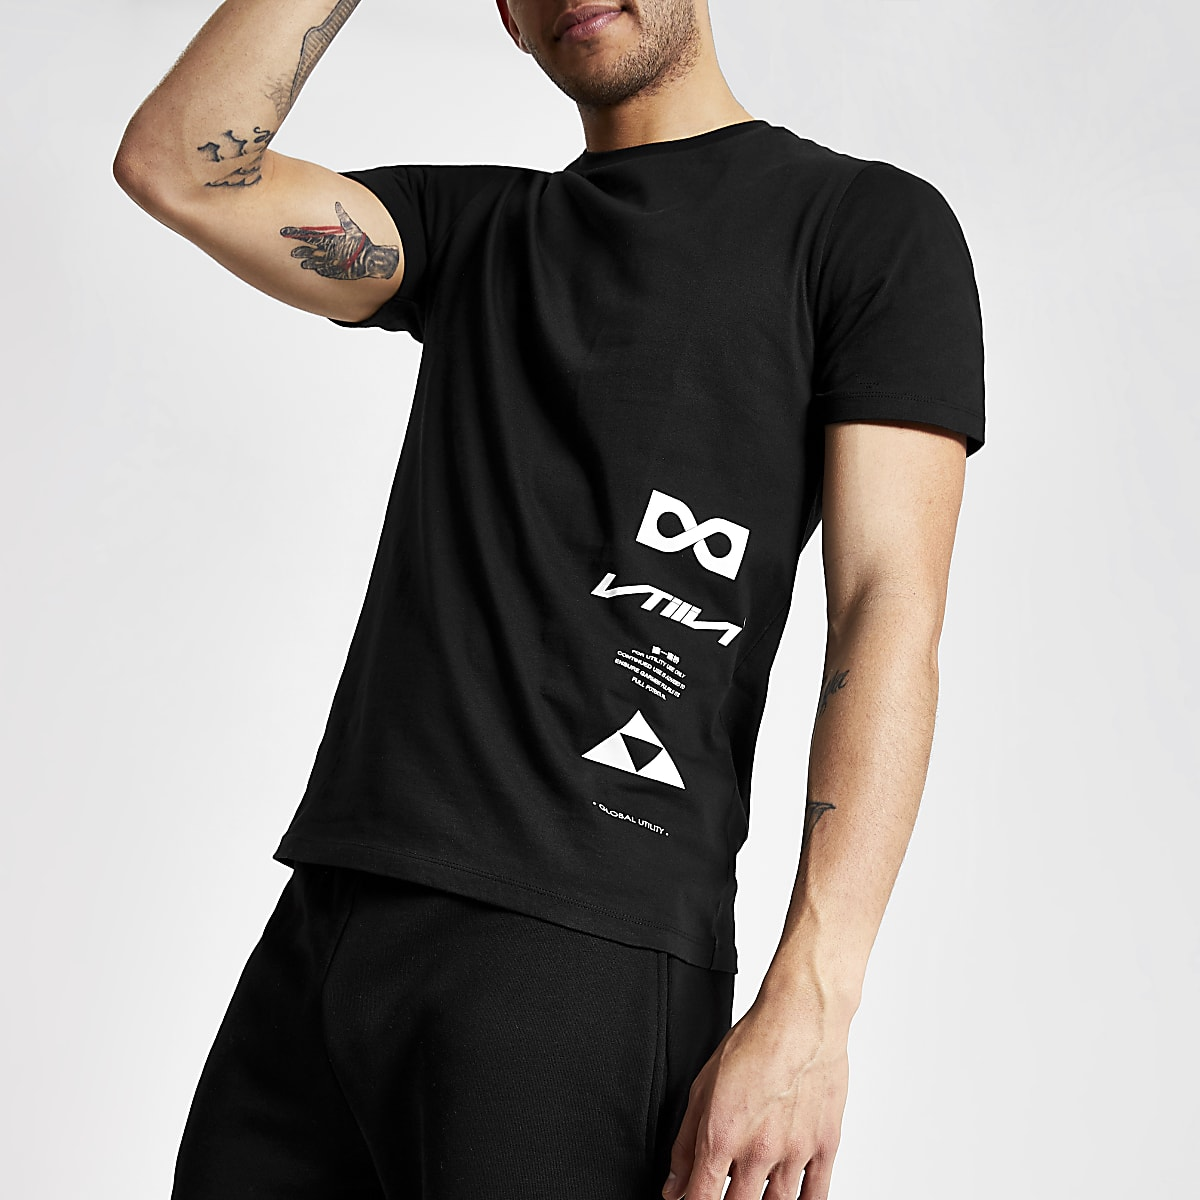 e8a2770bc5 Black slim fit printed T-shirt - T-shirts - T-Shirts & Vests - men